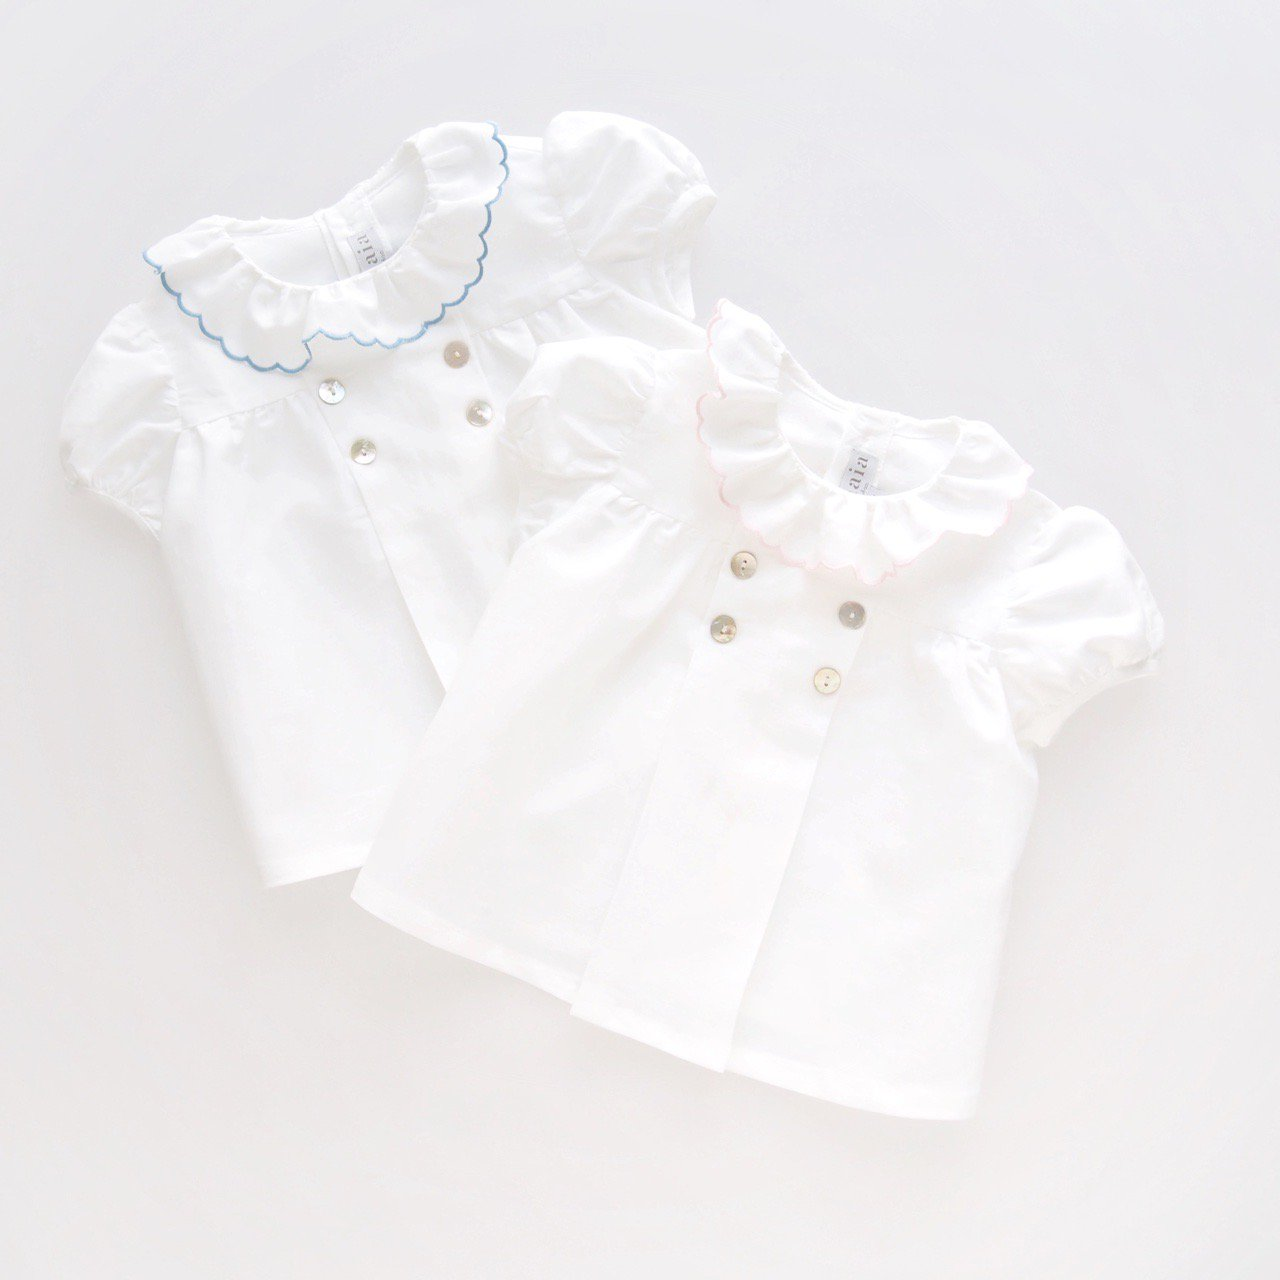 <img class='new_mark_img1' src='https://img.shop-pro.jp/img/new/icons1.gif' style='border:none;display:inline;margin:0px;padding:0px;width:auto;' />Amaia Kids - Eden blouse (Pink/ Blue)